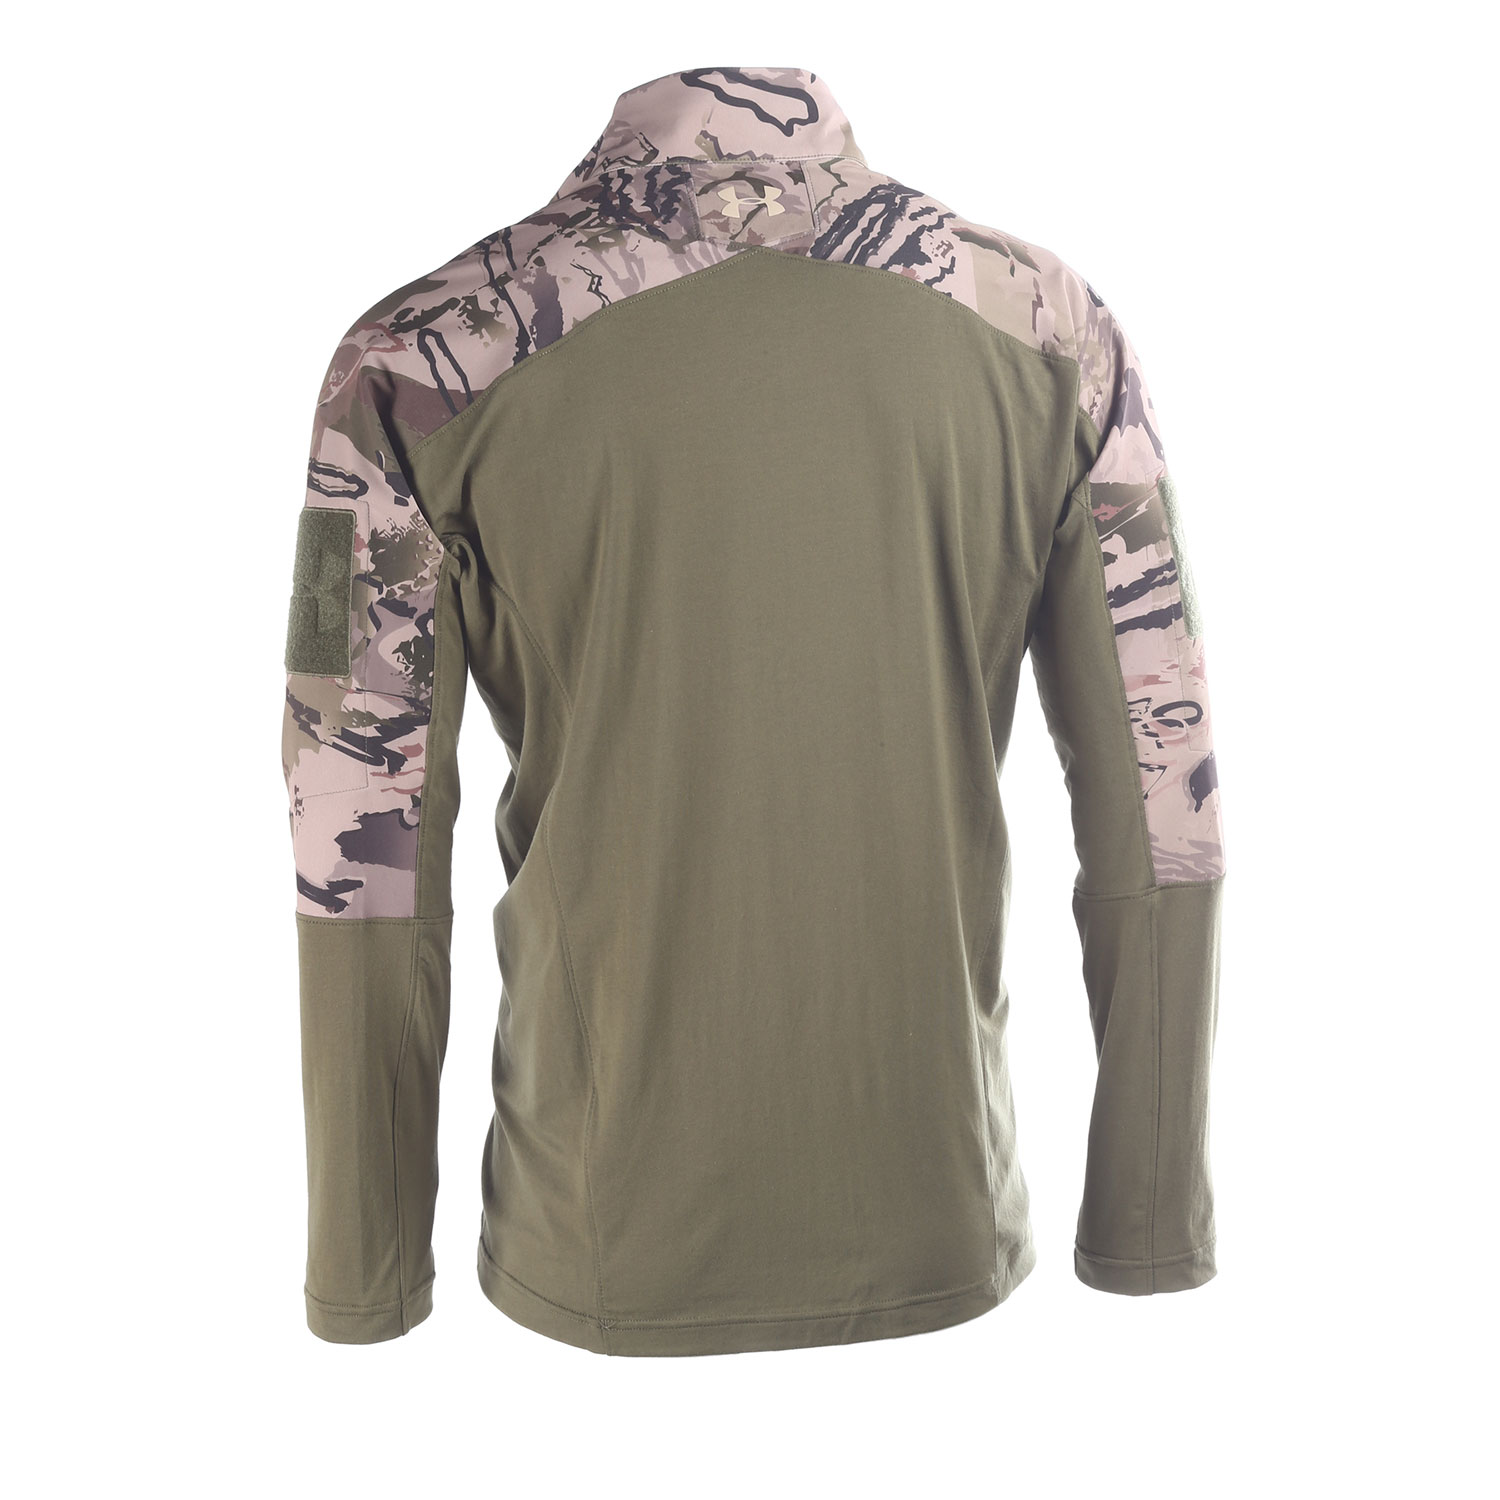 Under armour tactical combat shirt 2 0 for Under armor tactical t shirt